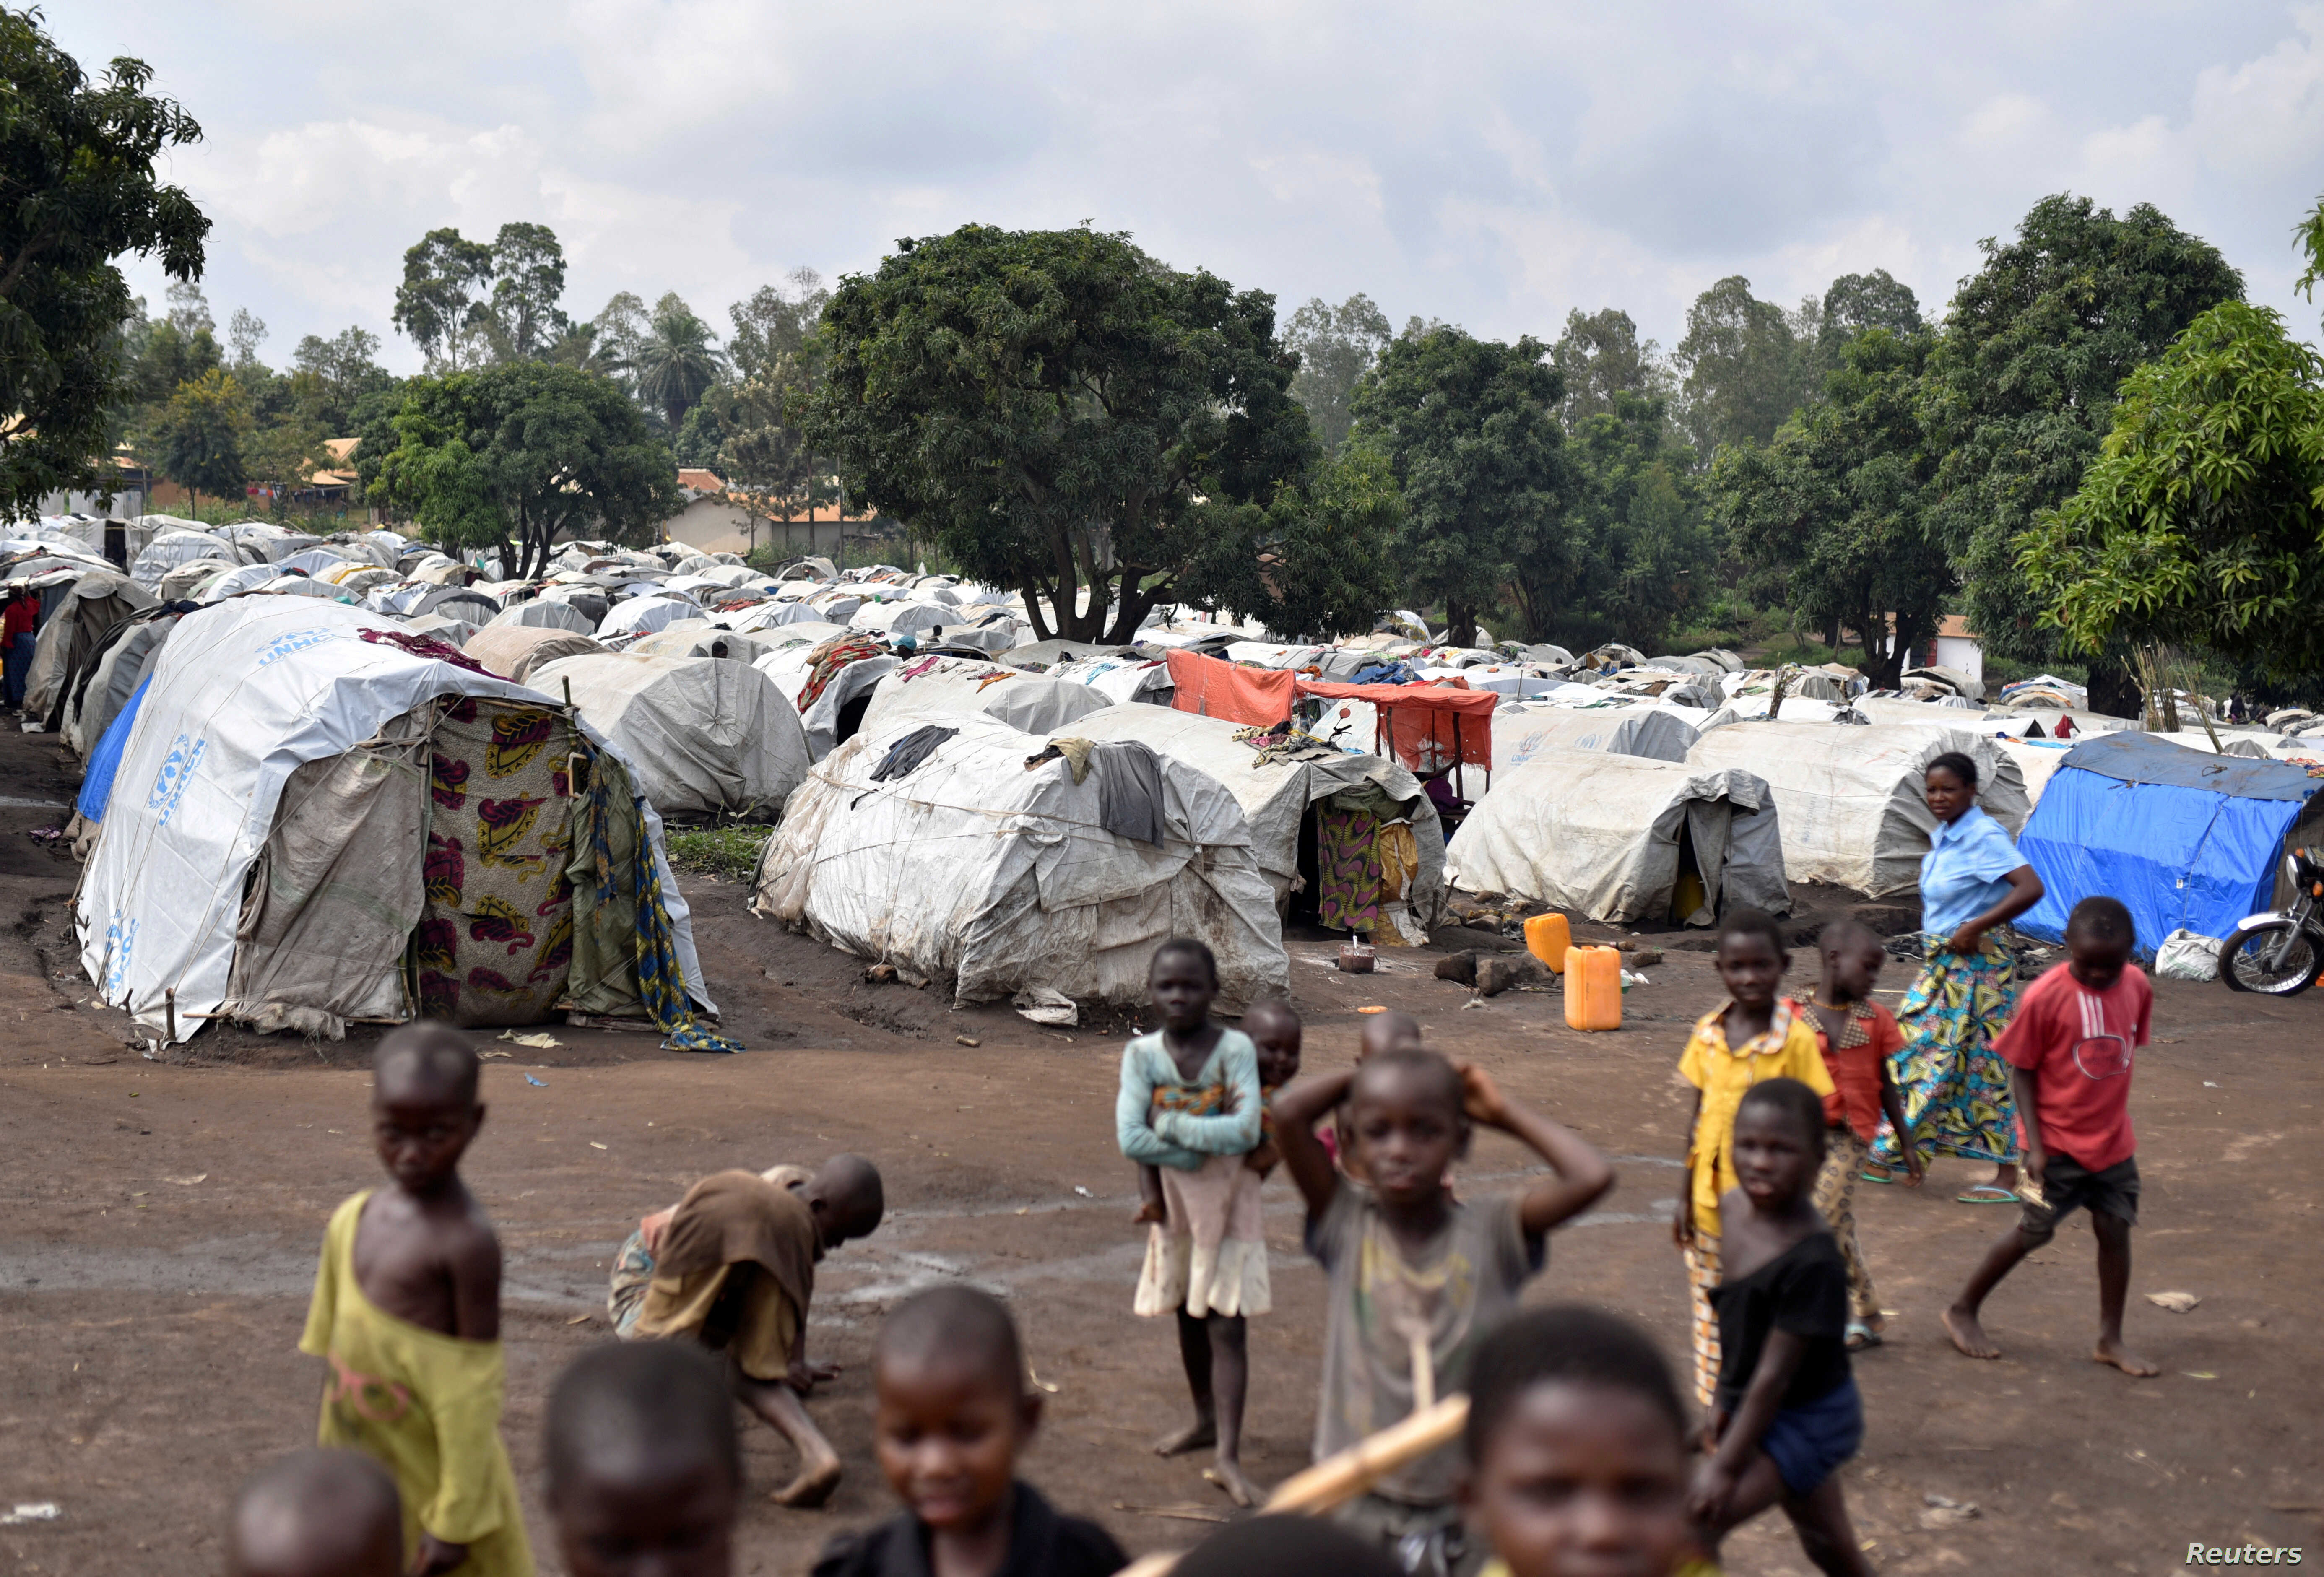 UNHCR: 360,000 Displaced in Congo's Ituri Province Struggling to Survive